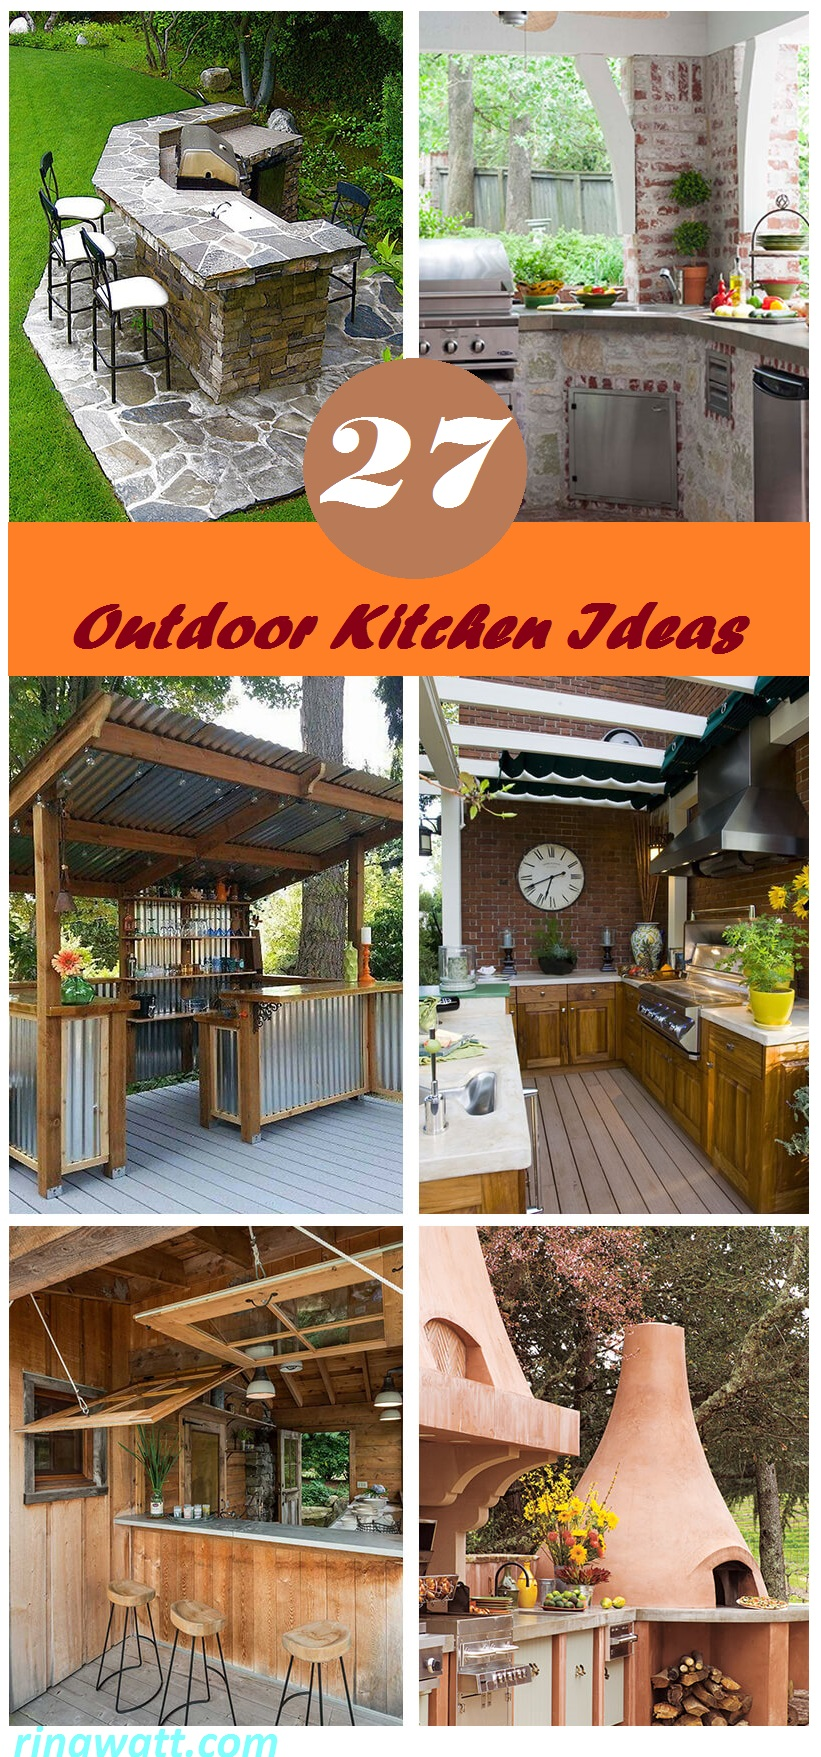 27 Amazing Outdoor Kitchen Ideas Your